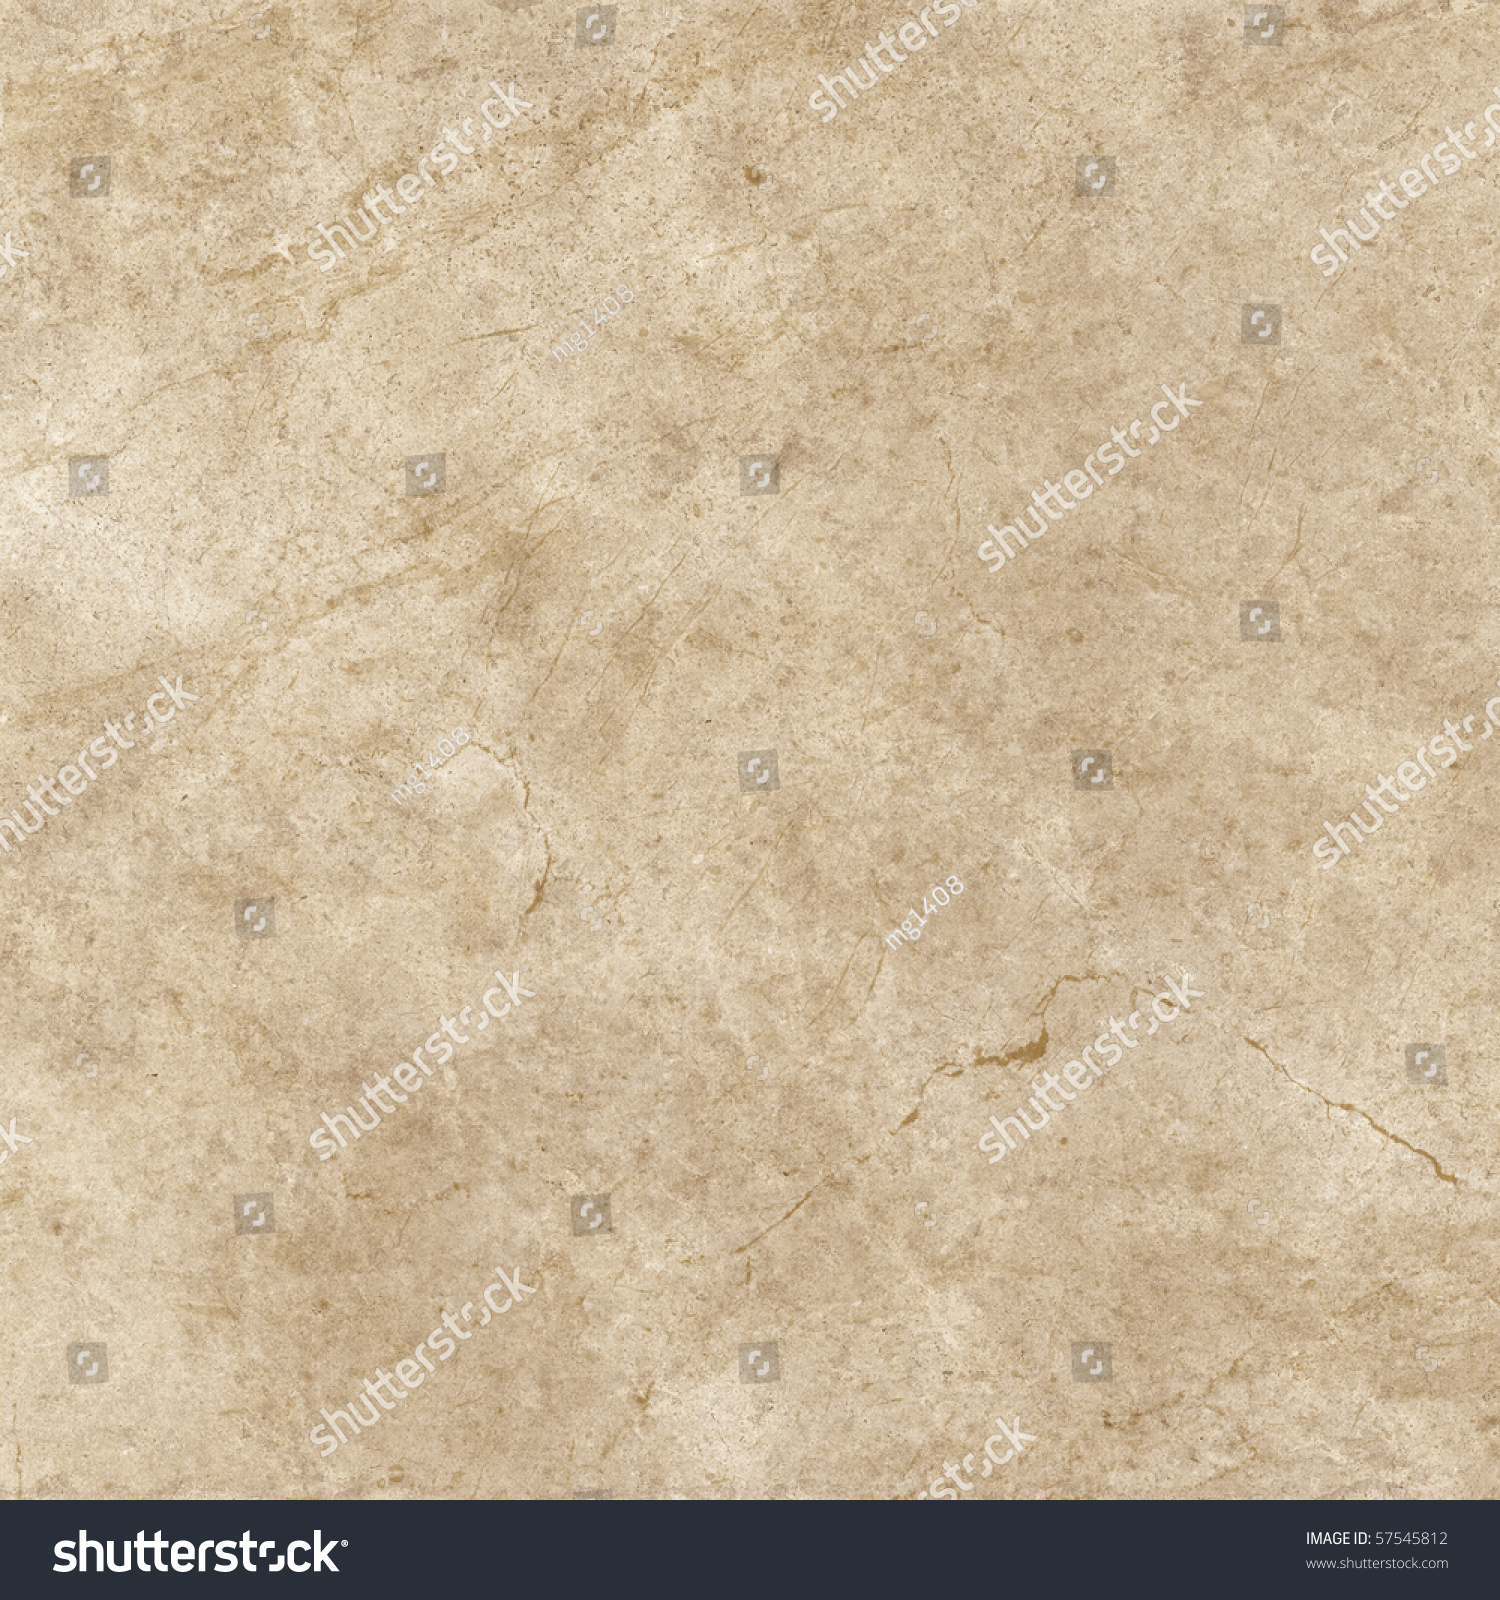 High Res Light Brown Marble Texture Stock Photo 57545812 ...